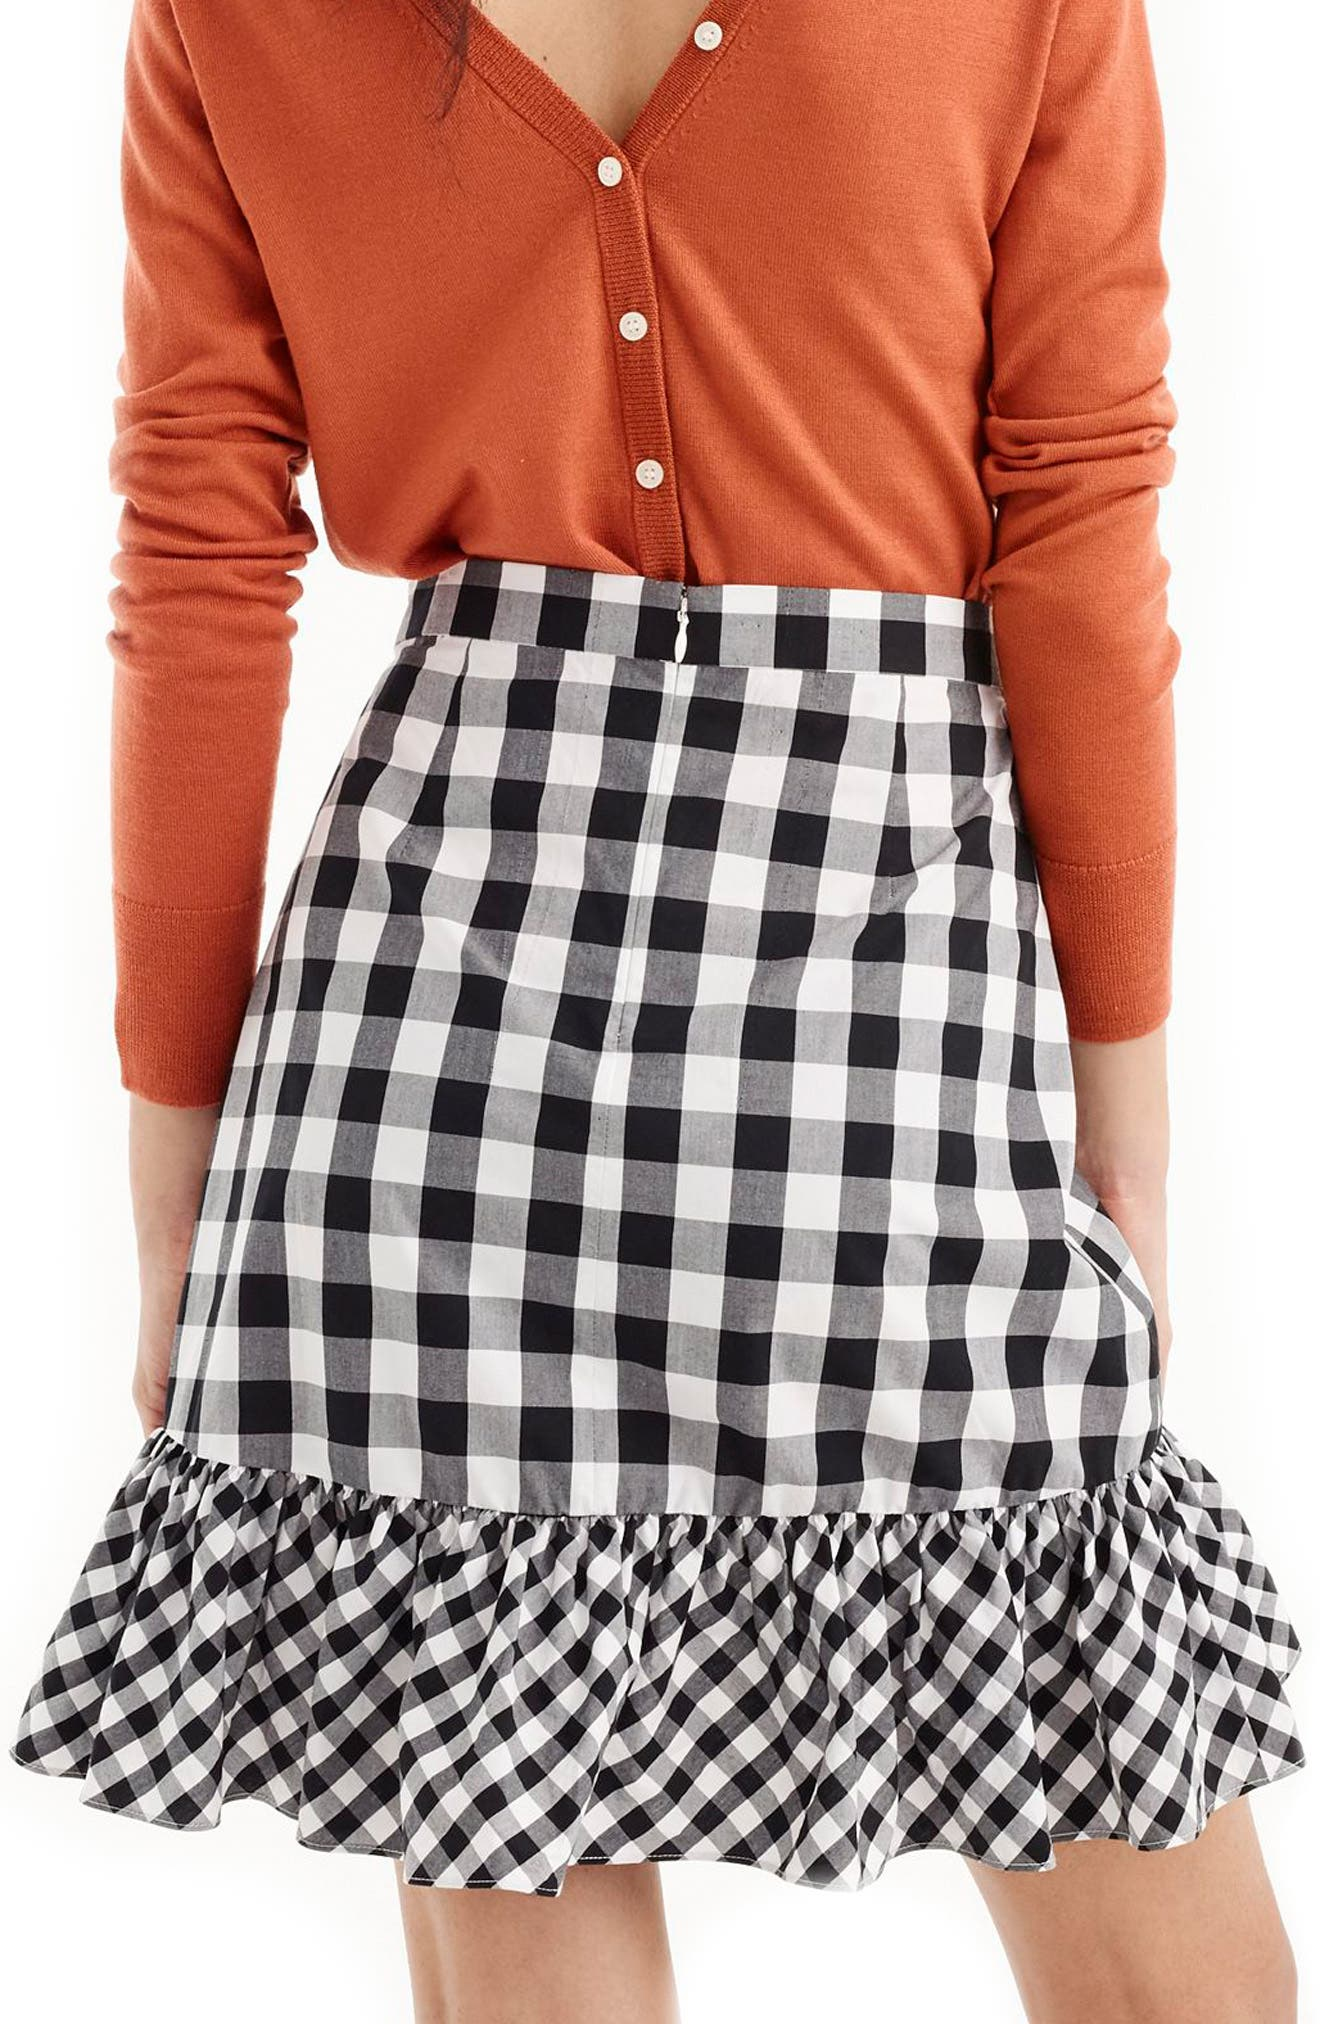 Pistachio Gingham Cotton Poplin Ruffle Skirt,                             Alternate thumbnail 2, color,                             Black